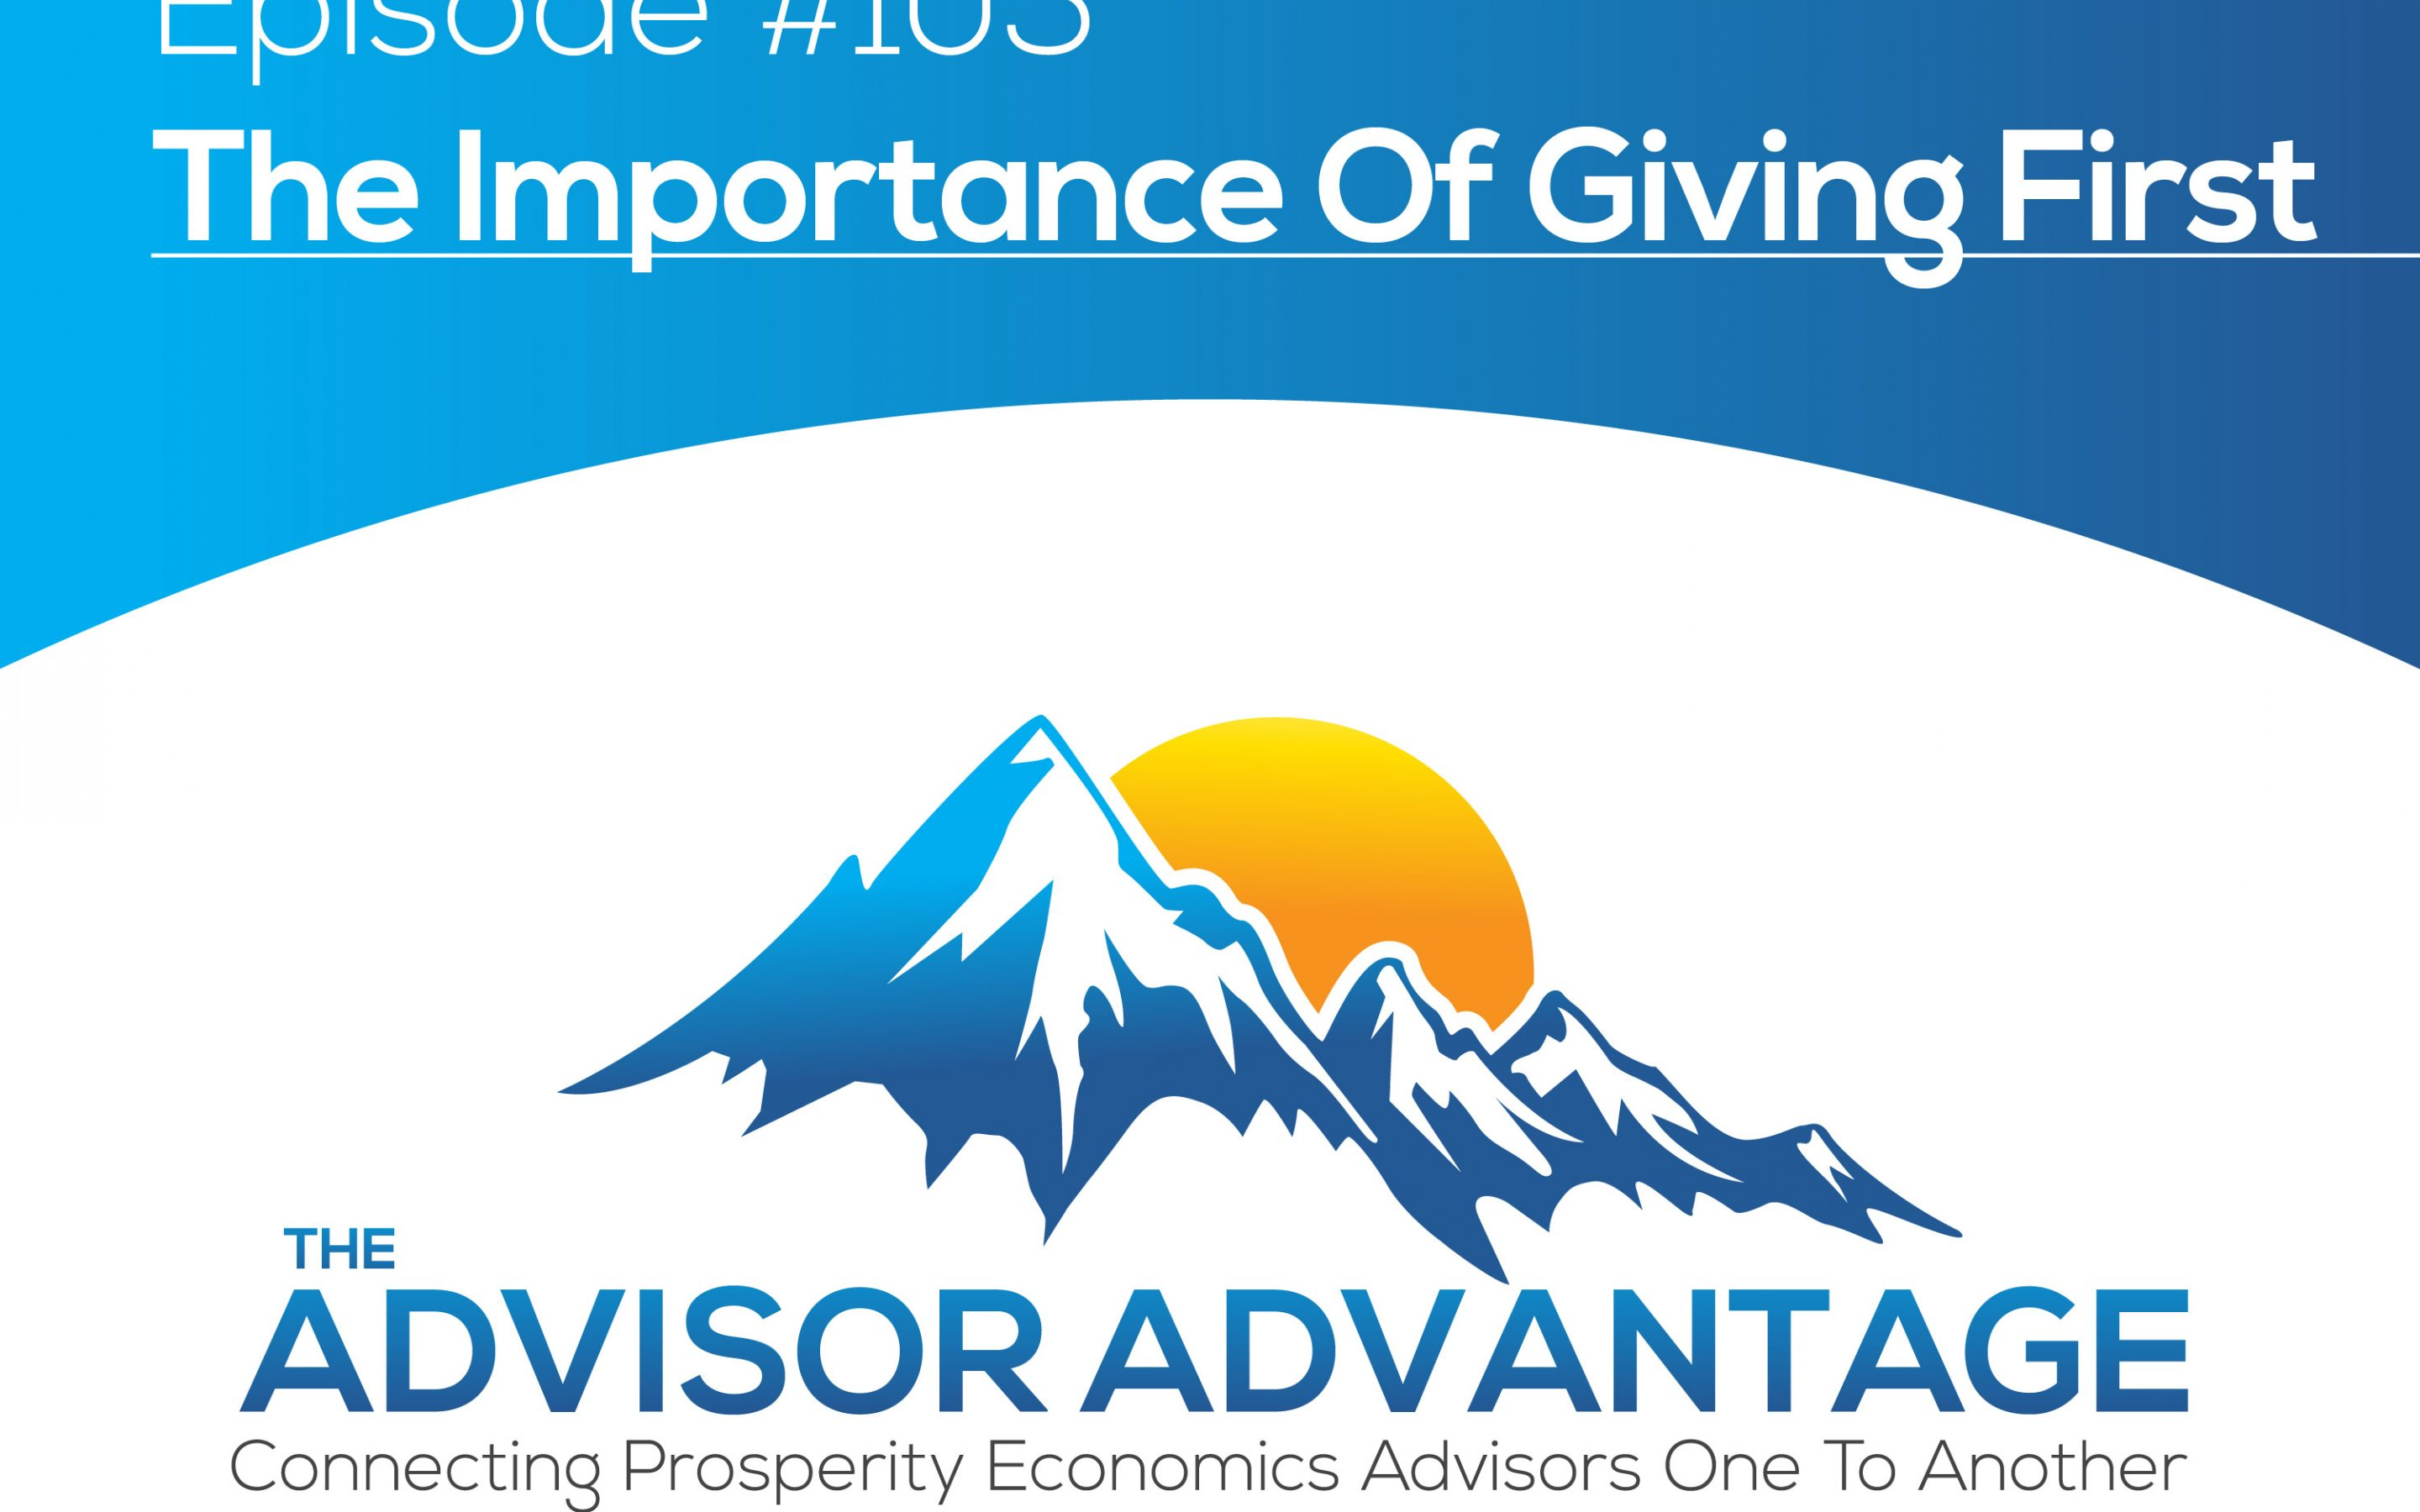 The Importance Of Giving First – Episode 105